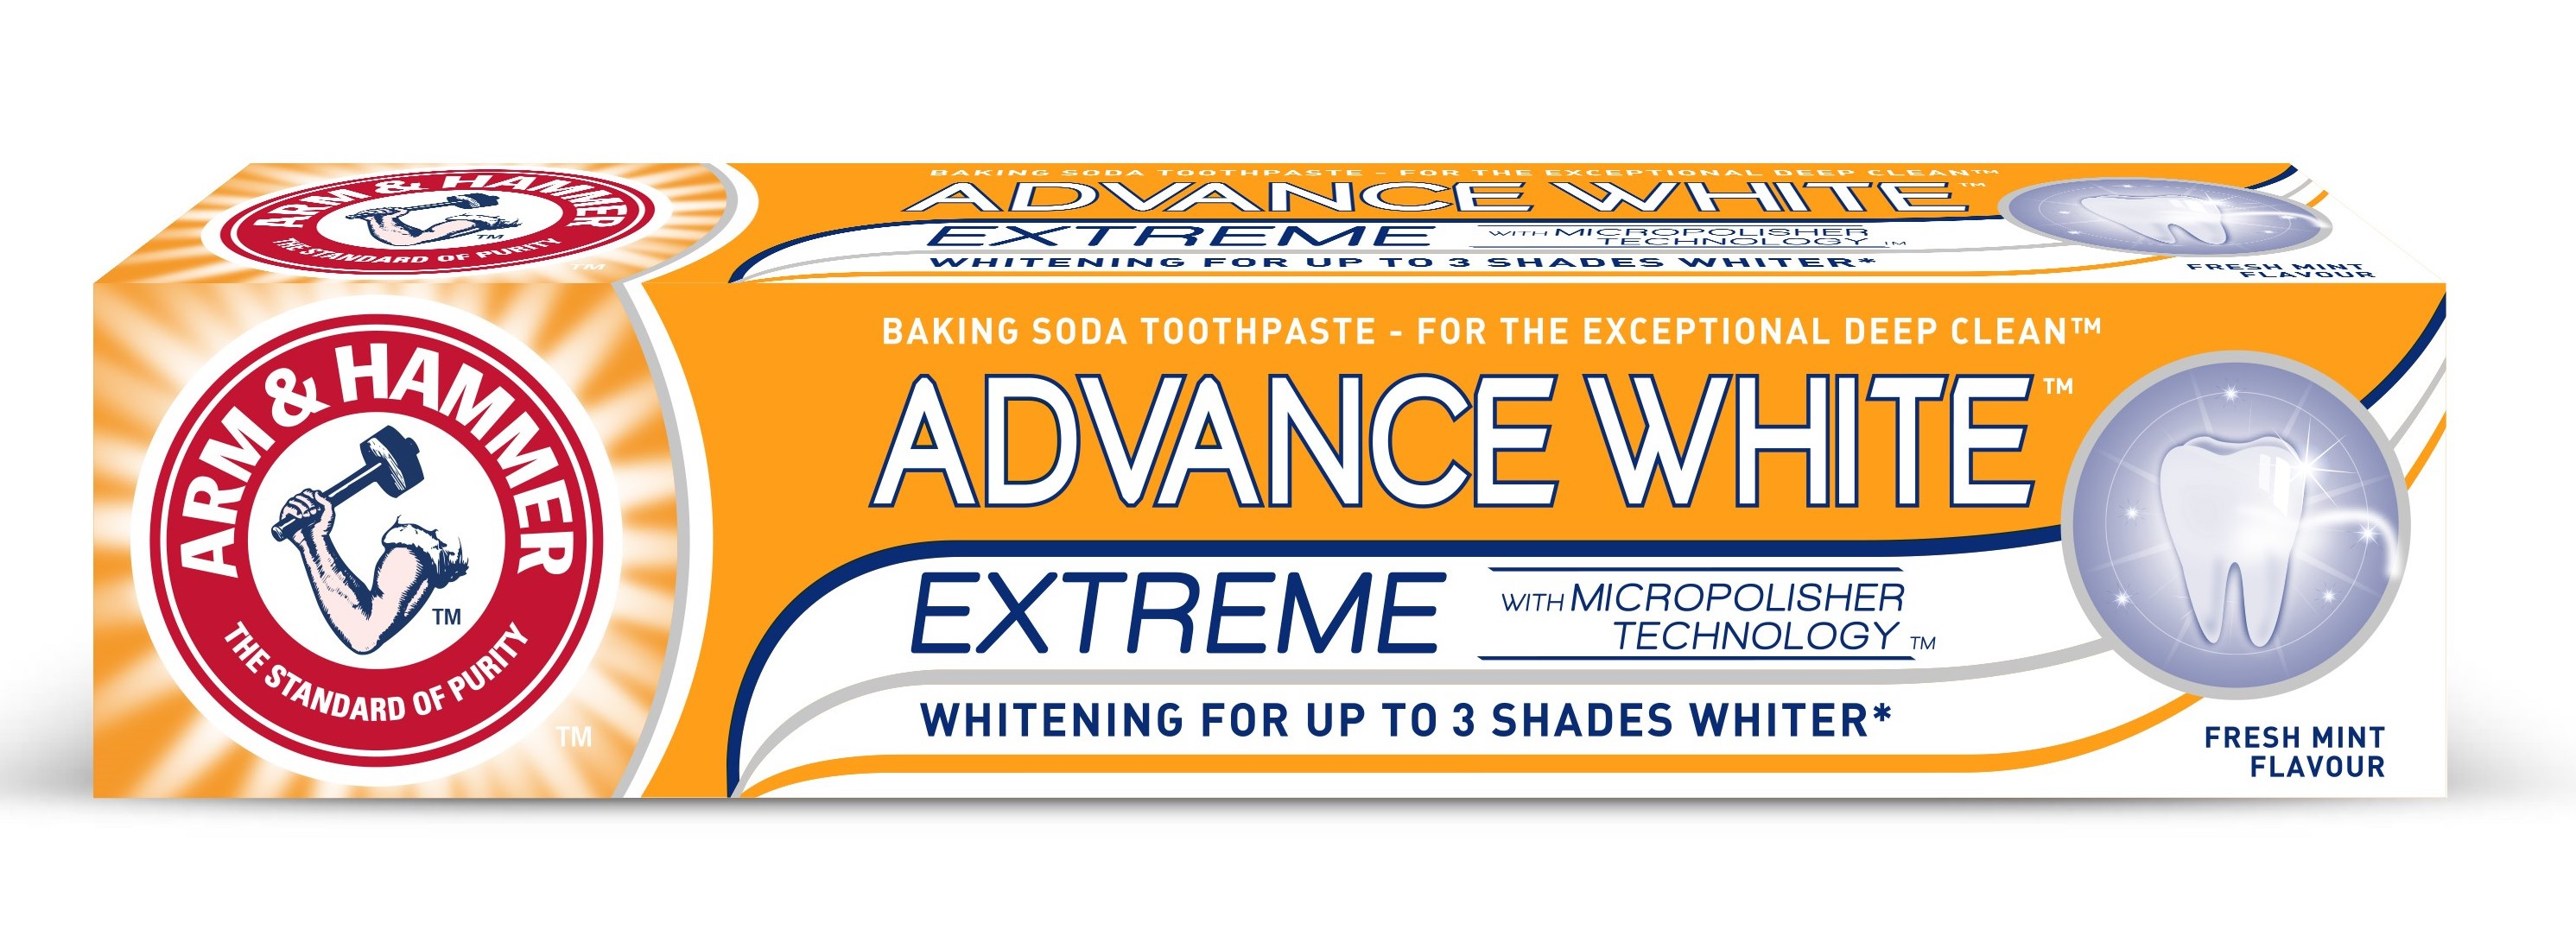 national-smile-month-dental-hygiene-home-arm-hammer-toothpaste-advance-white-extreme